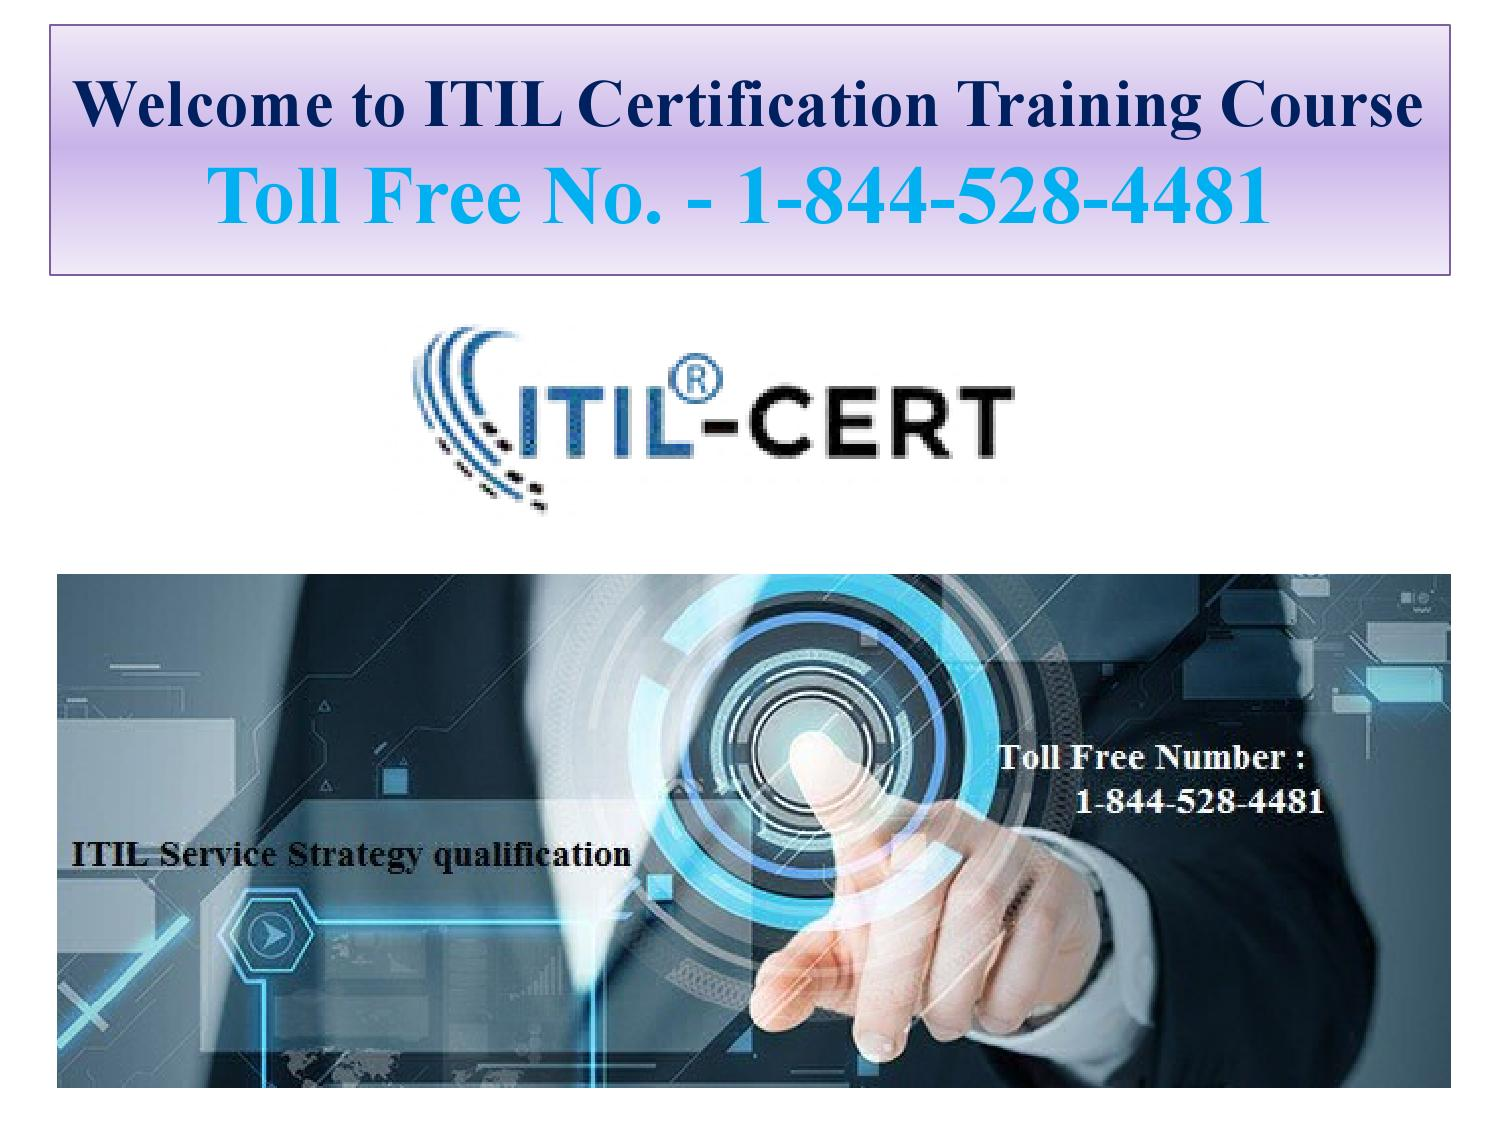 Itil certification training course 1 844 528 4481 by jennifer itil certification training course 1 844 528 4481 by jennifer smith issuu xflitez Image collections